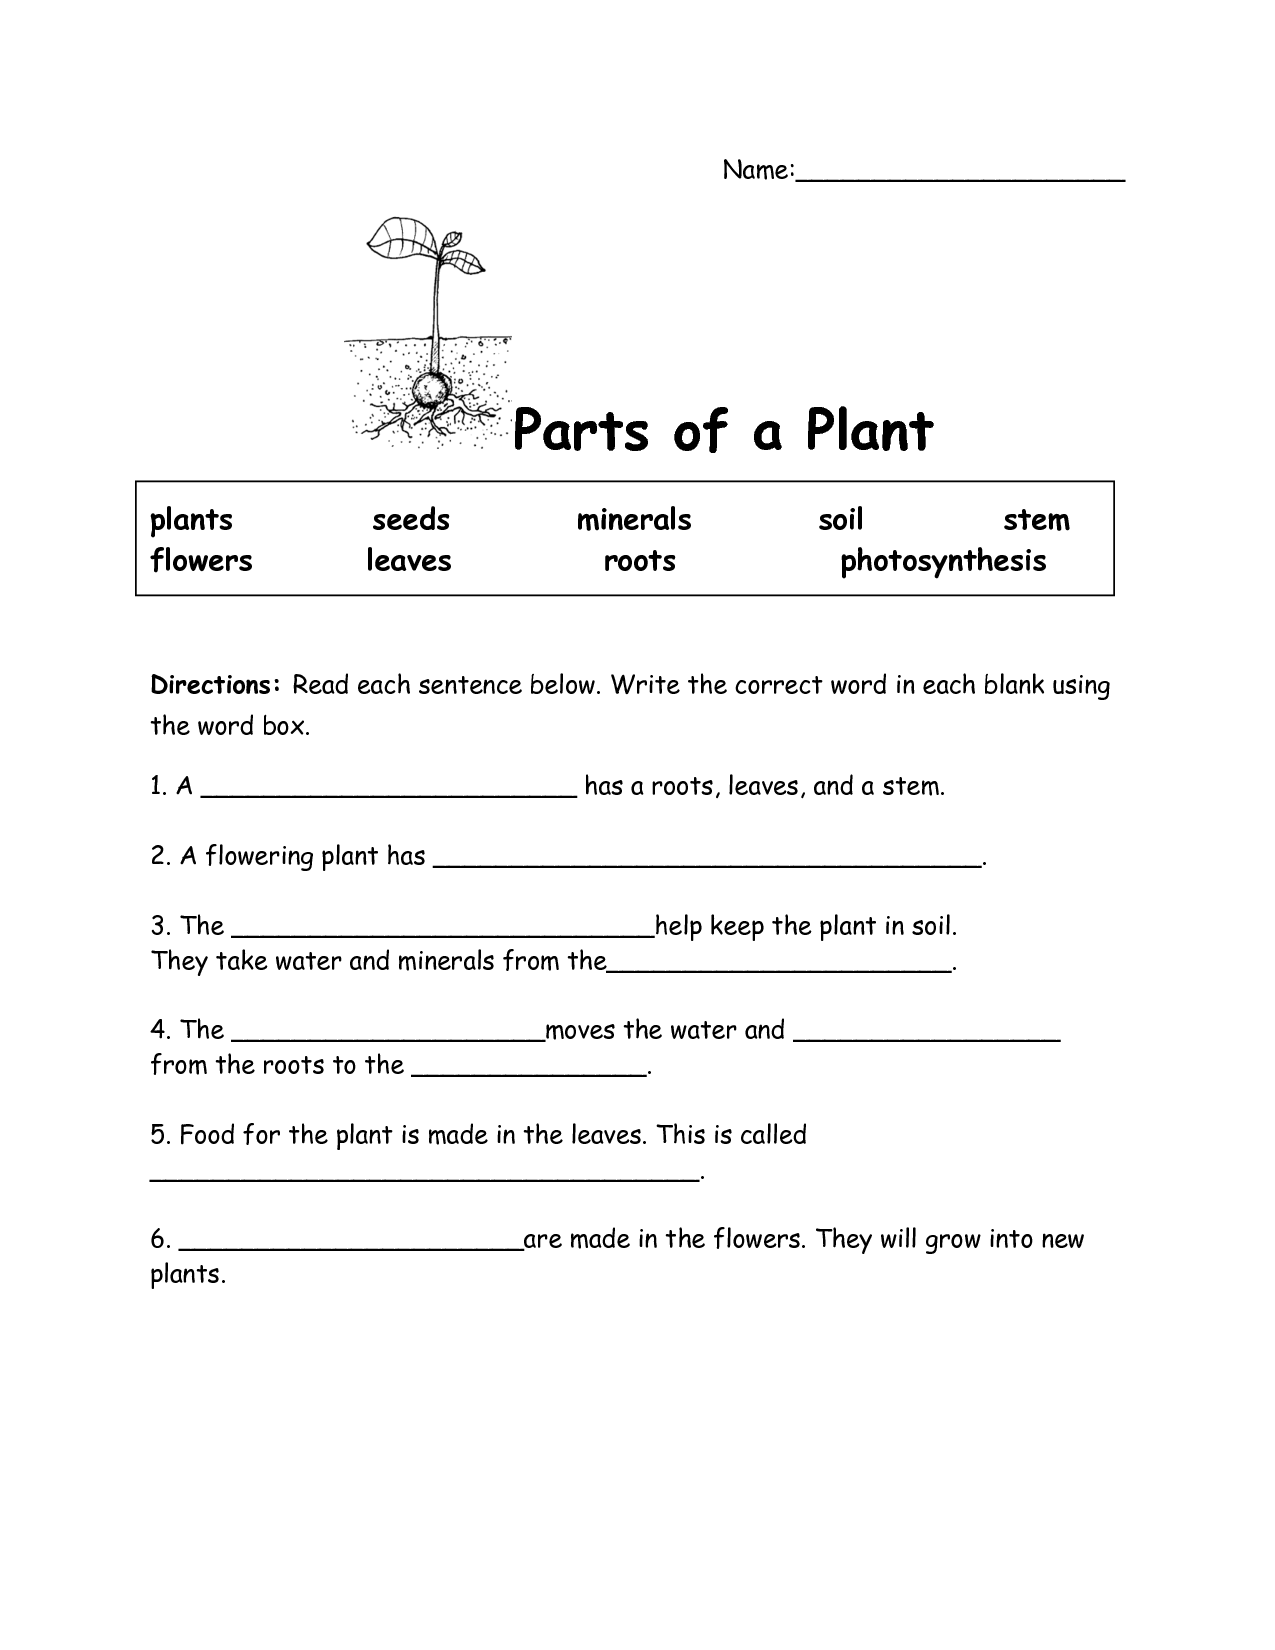 20 Flower Parts Crossword – Parts of a Plant Worksheet